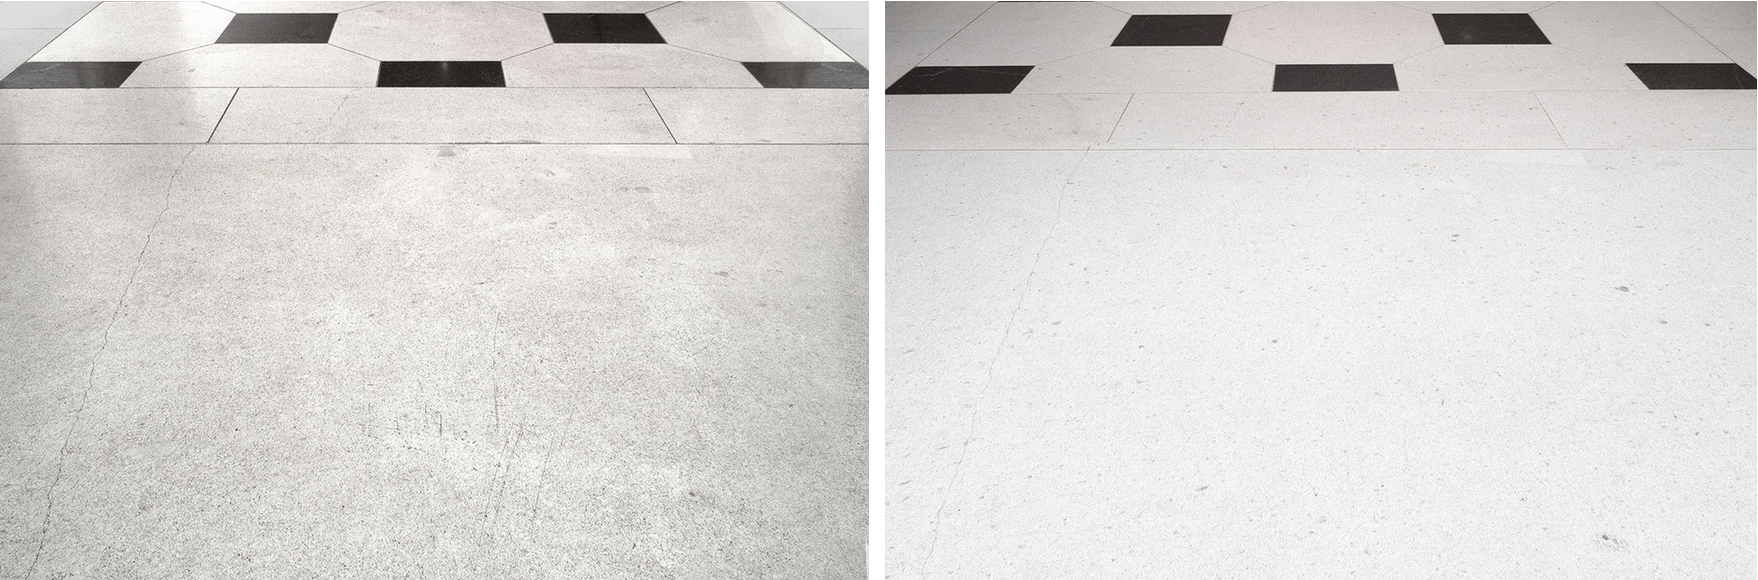 Leftto right: limestone floor before and after, cleaning andpolishing.